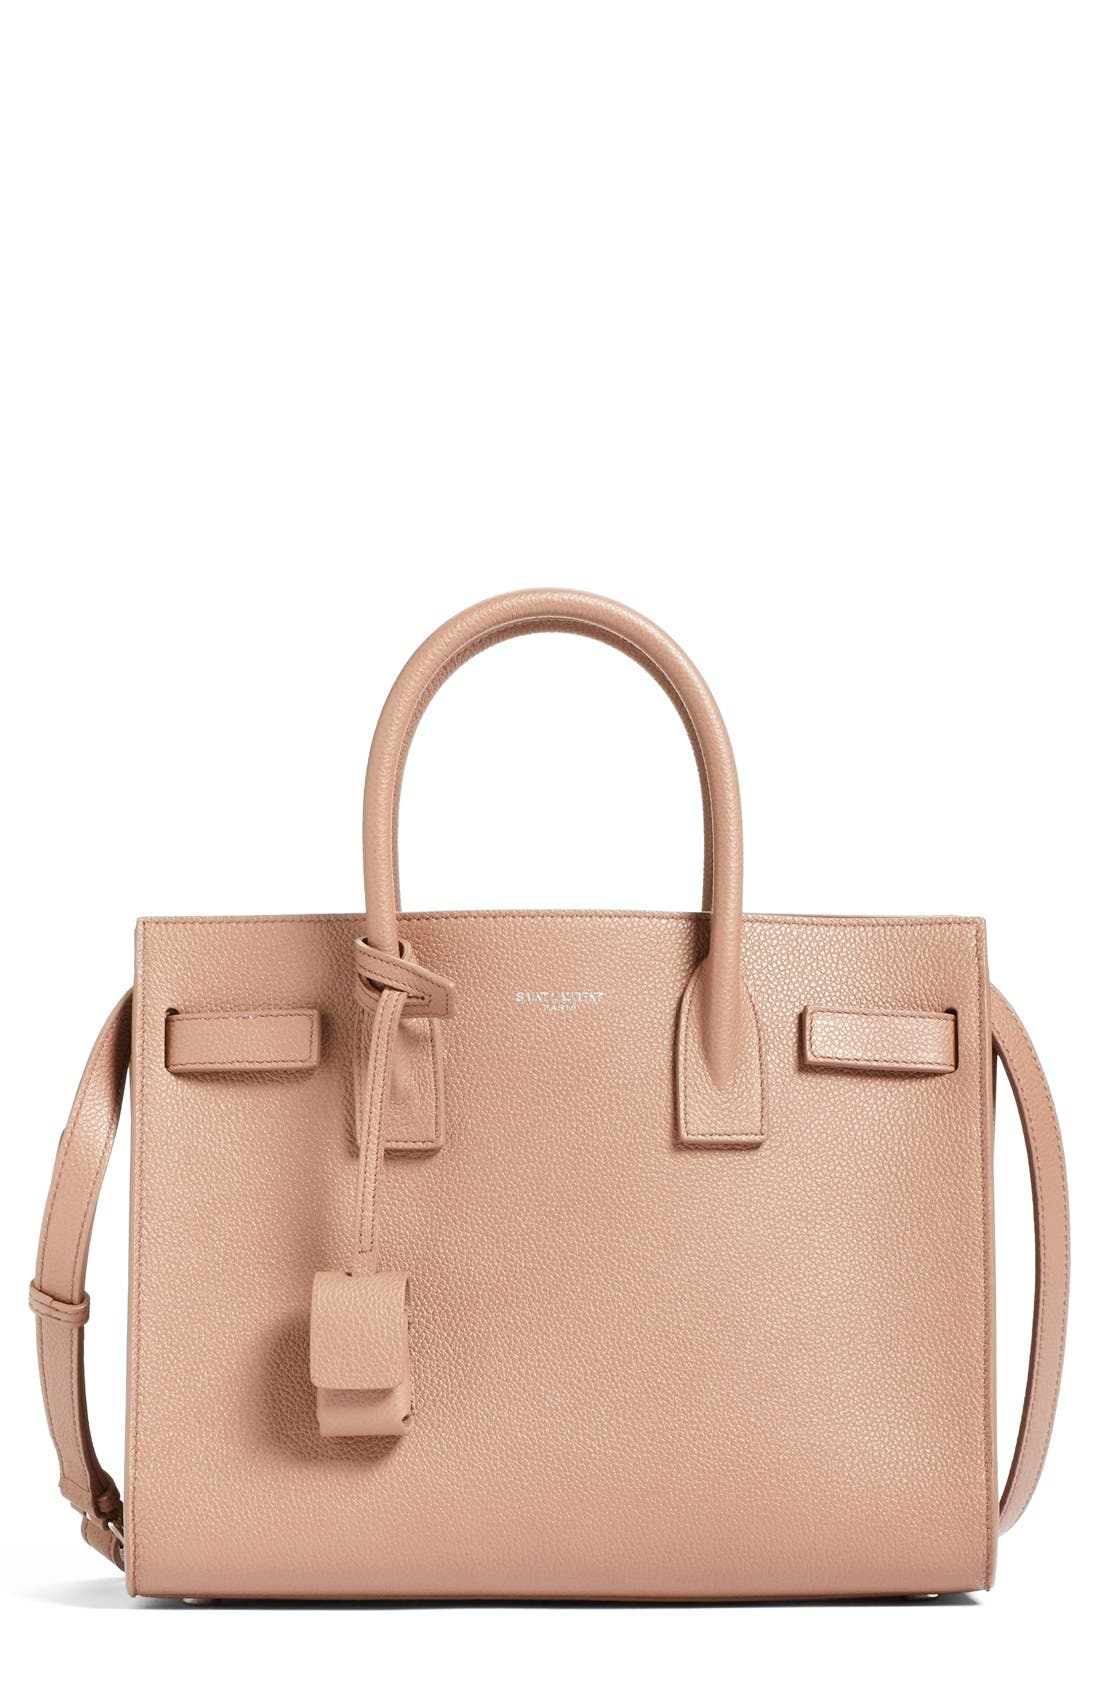 Alternate Image 1 Selected - Saint Laurent 'Baby Sac de Jour' Bonded Leather Tote